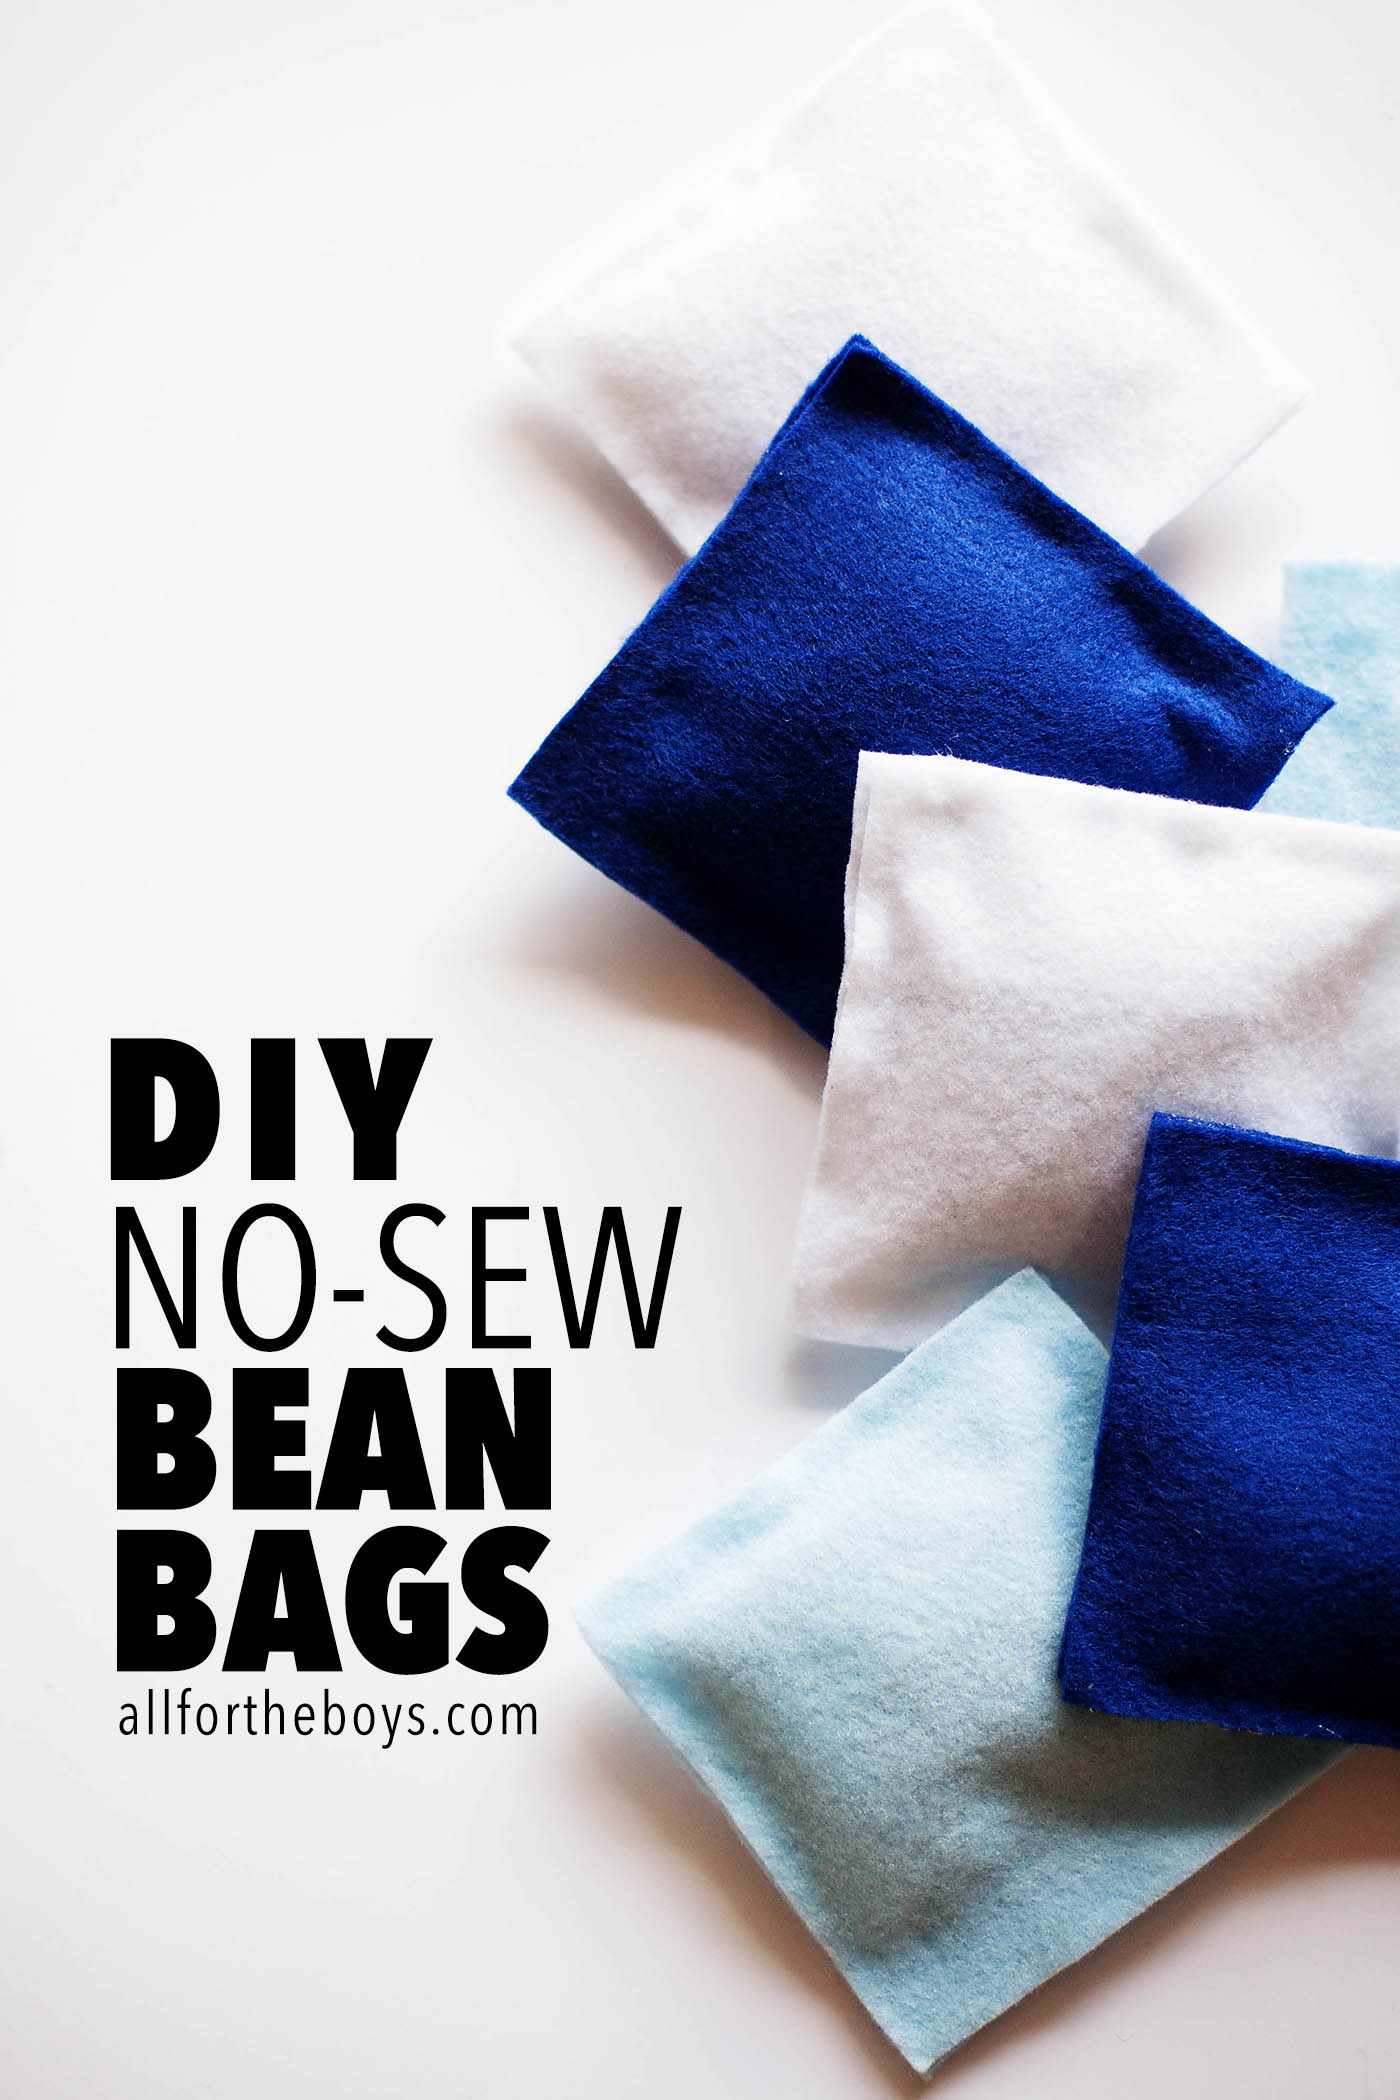 DIY no-sew bean bags